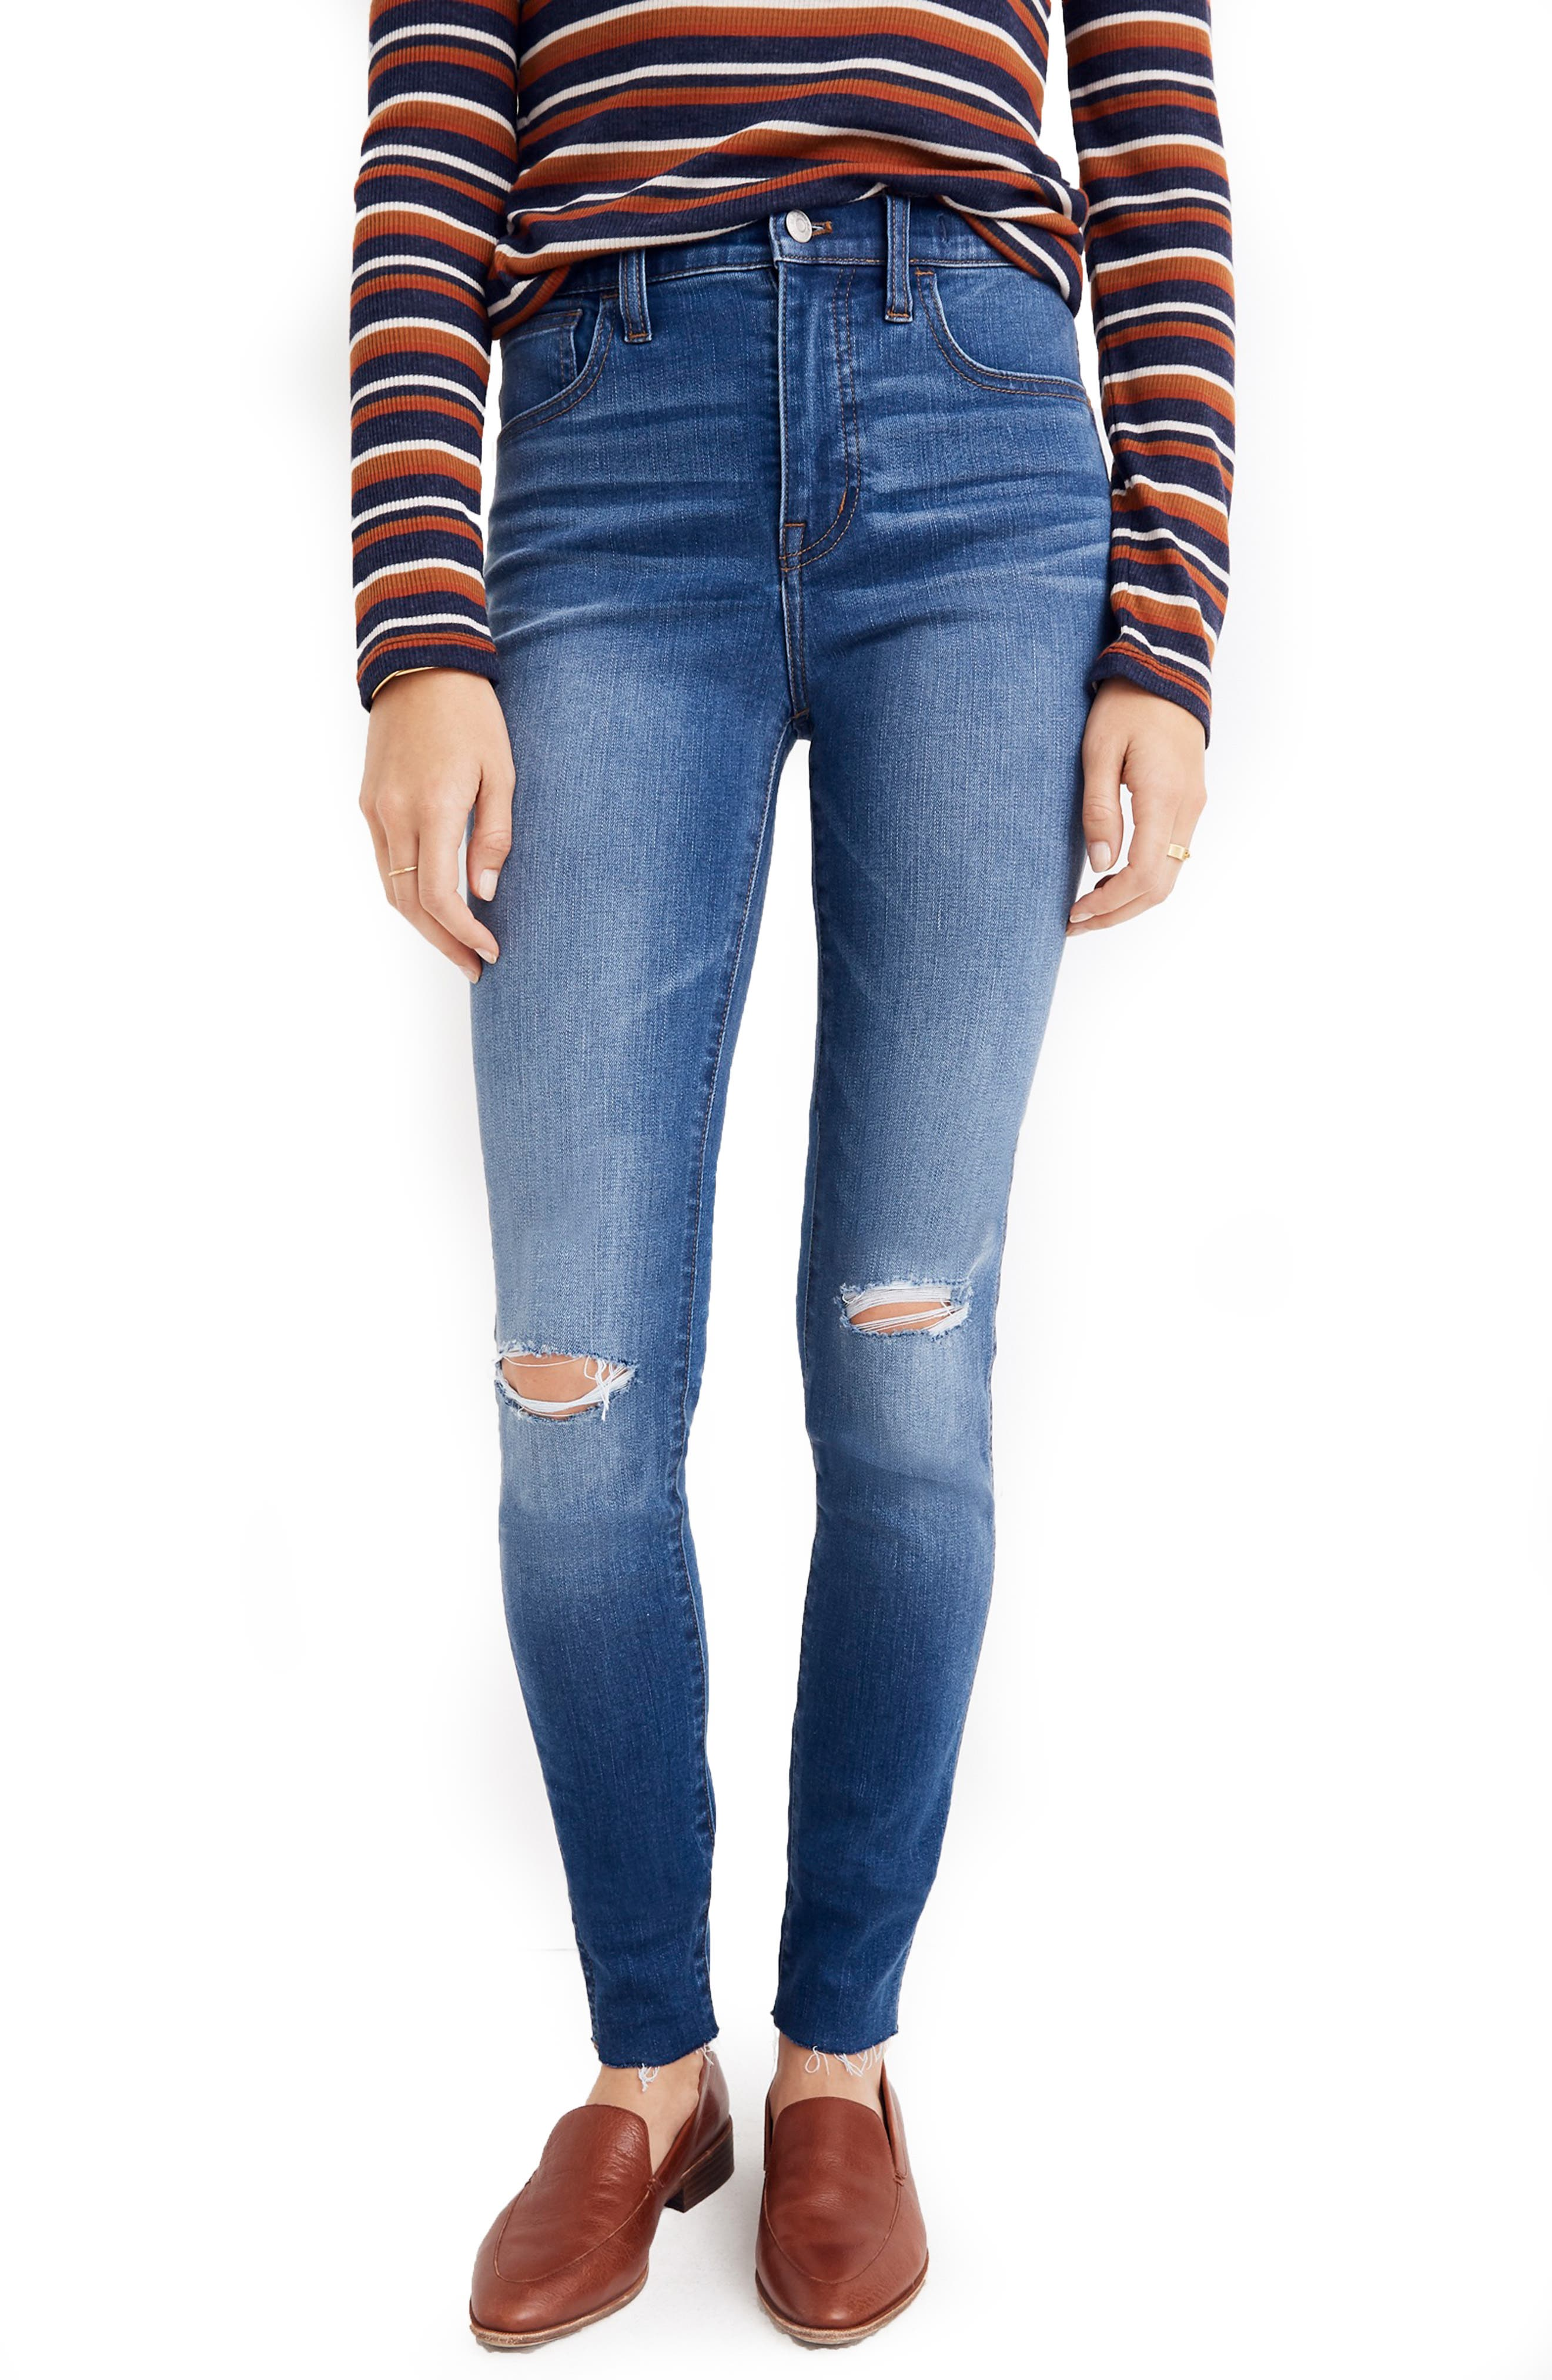 MADEWELL, Roadtripper Ripped High Waist Ankle Skinny Jeans, Main thumbnail 1, color, THE ROAD TRIPPER W/ SLIT KNEES